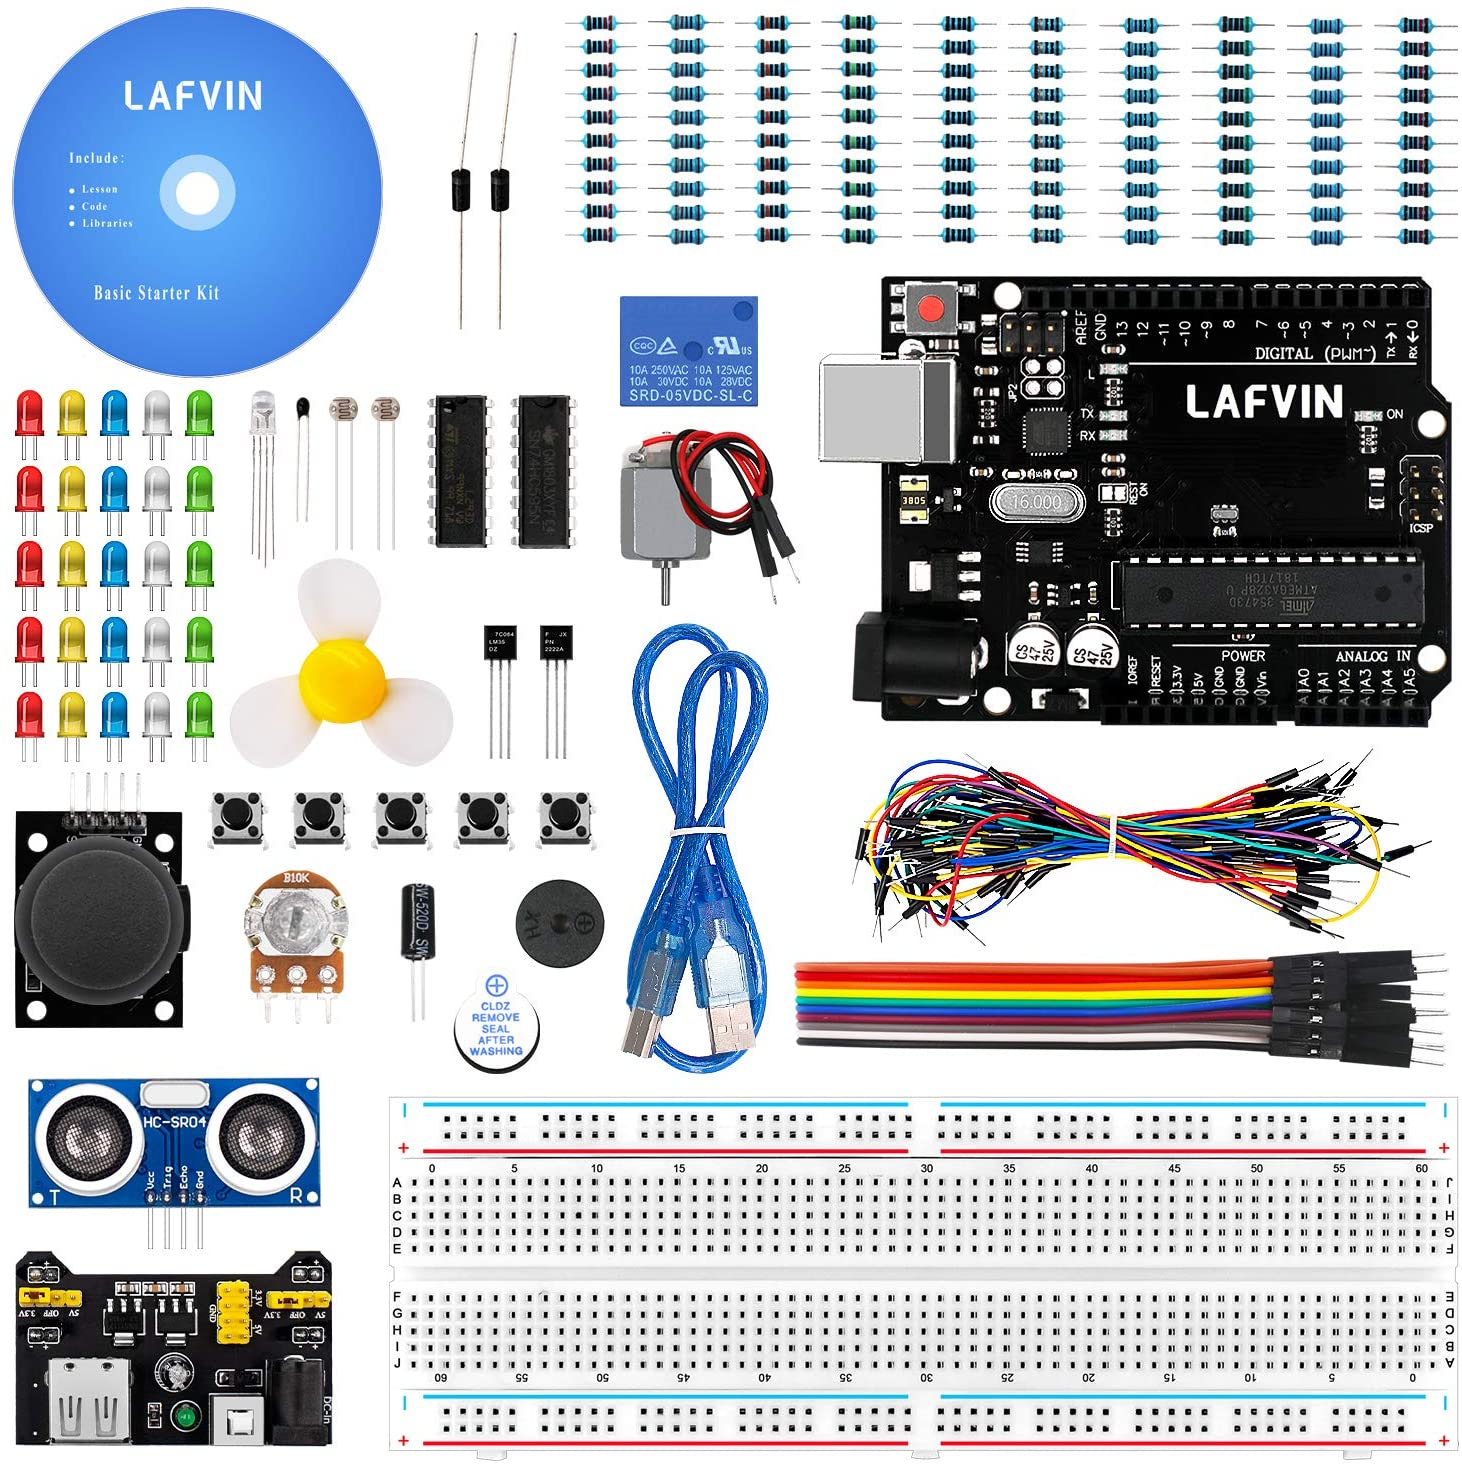 LAFVIN Basic Starter Kit with R3 Controller Board,LED, Resistor,Jumper Wires and Power Supply Compatible with Arduino IDE